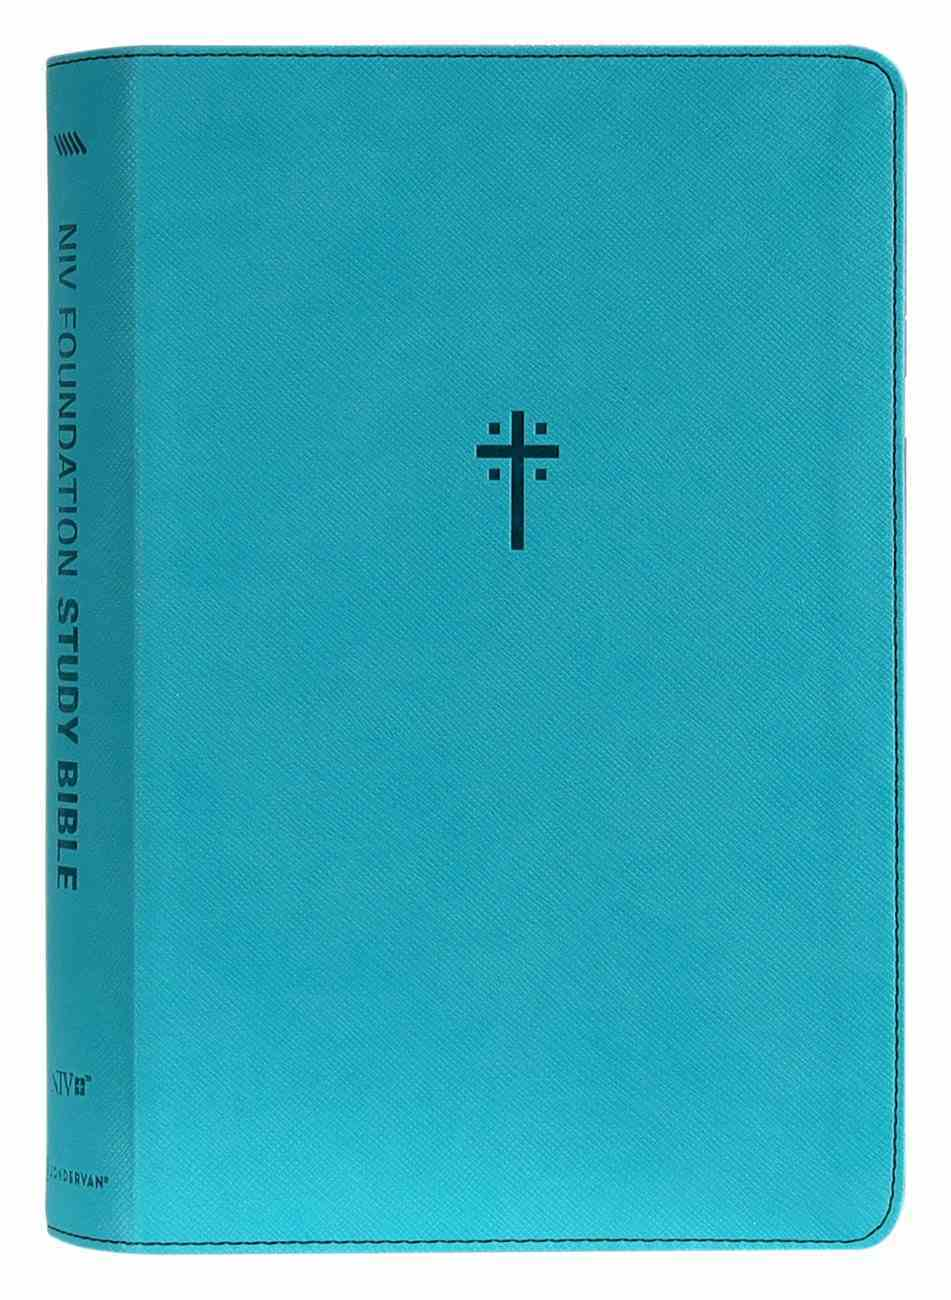 NIV Foundation Study Bible Teal (Red Letter Edition) Premium Imitation Leather